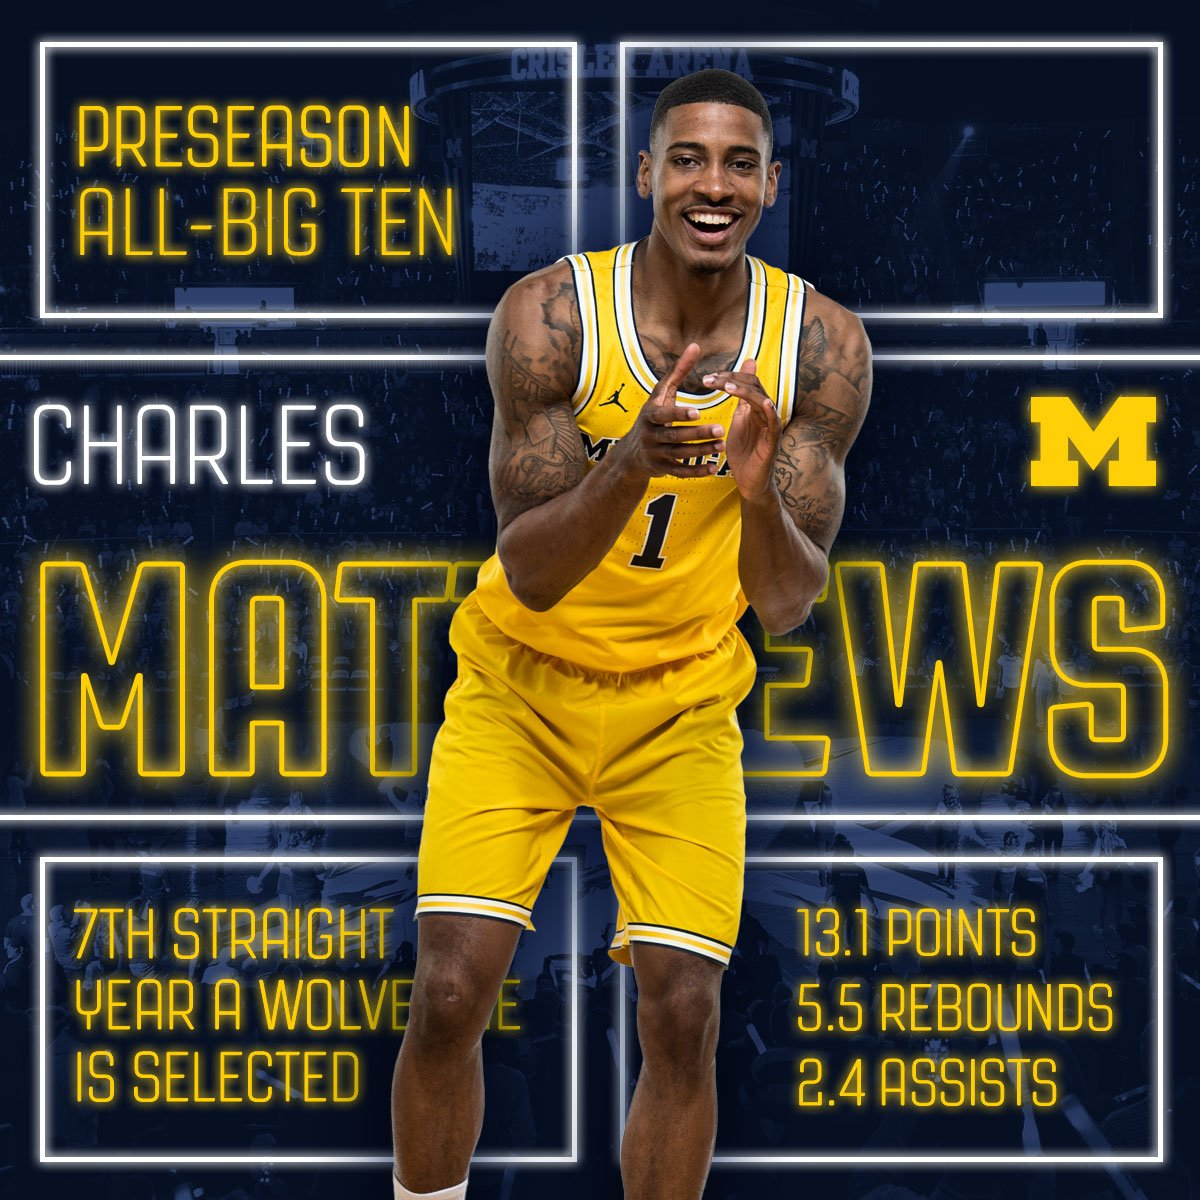 Not , not , not    or even  BUT  straight years a Wolverine has made the @B1GMBBall Preseason Team  Congrats to @1CMatthews for getting the nod this year!   release:  http:// myumi.ch/6kVrQ  &nbsp;    #GoBlue  #B1GMediaDay <br>http://pic.twitter.com/3jucU18KTe